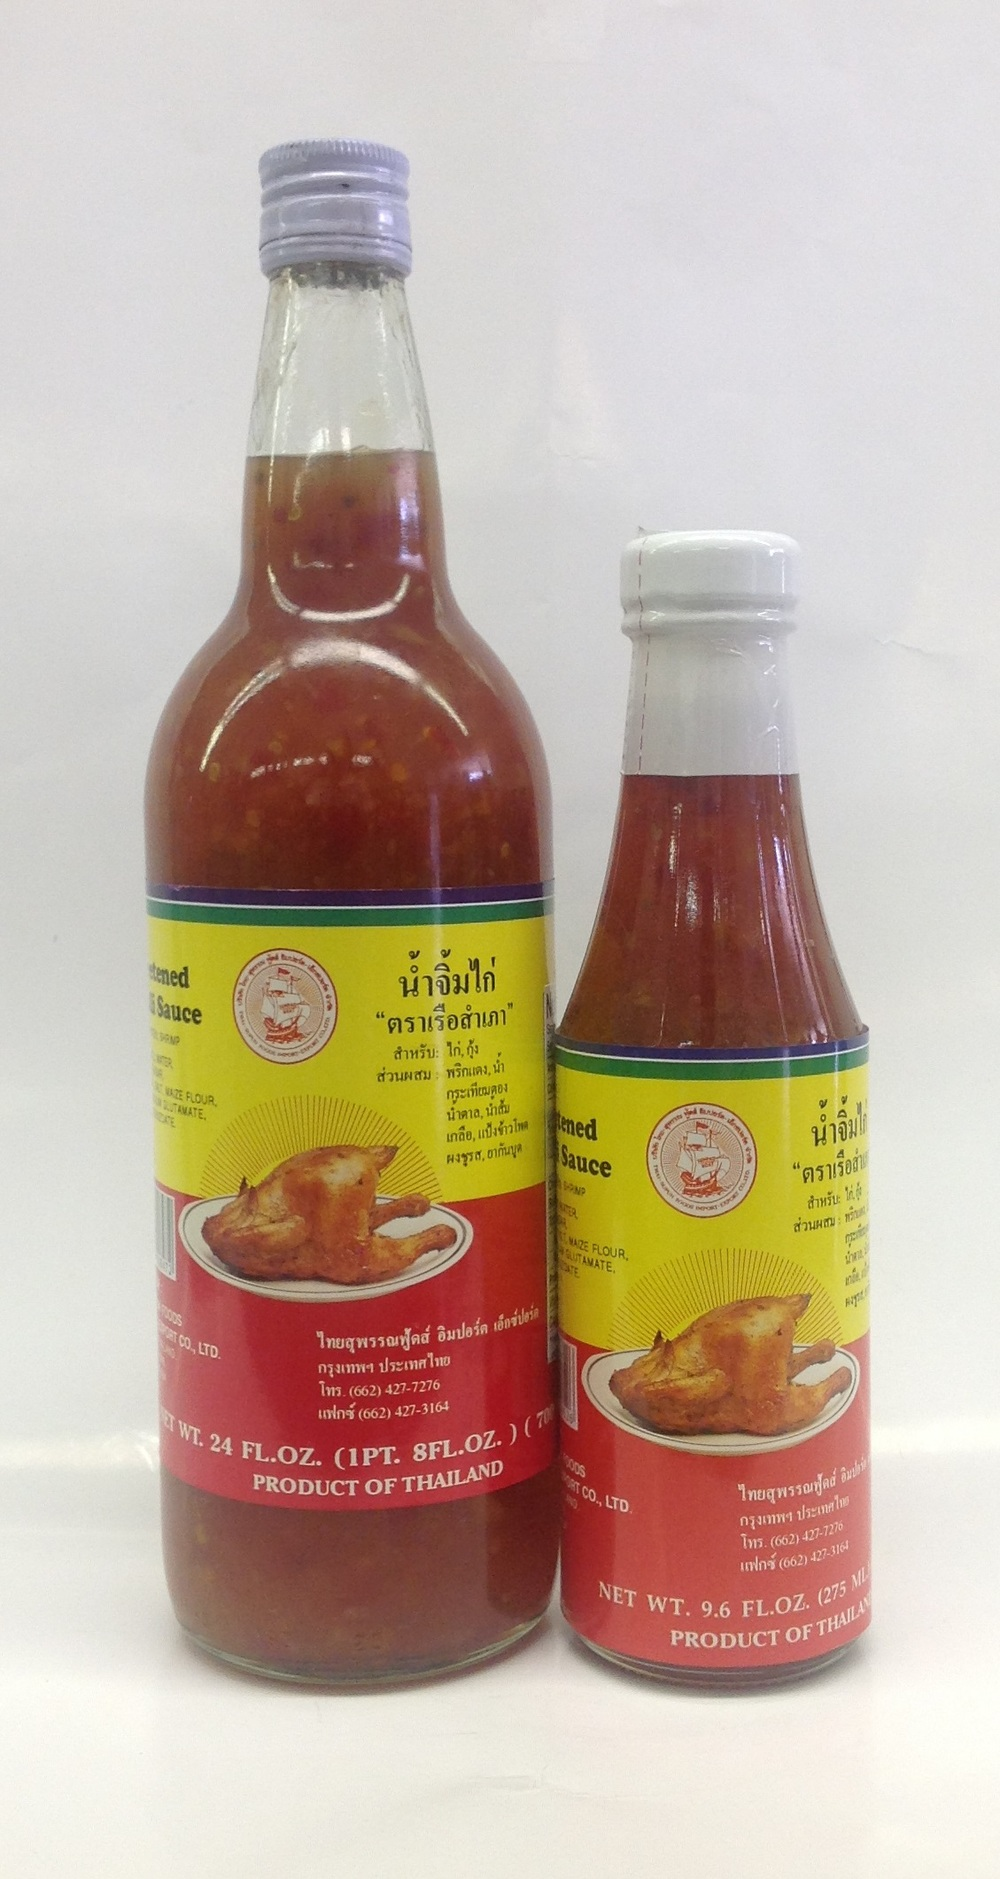 Sweetened Chili Sauce (Chicken)   Sumpao Boat   SC11289 12x24 oz  SC11291 24x9.6 oz